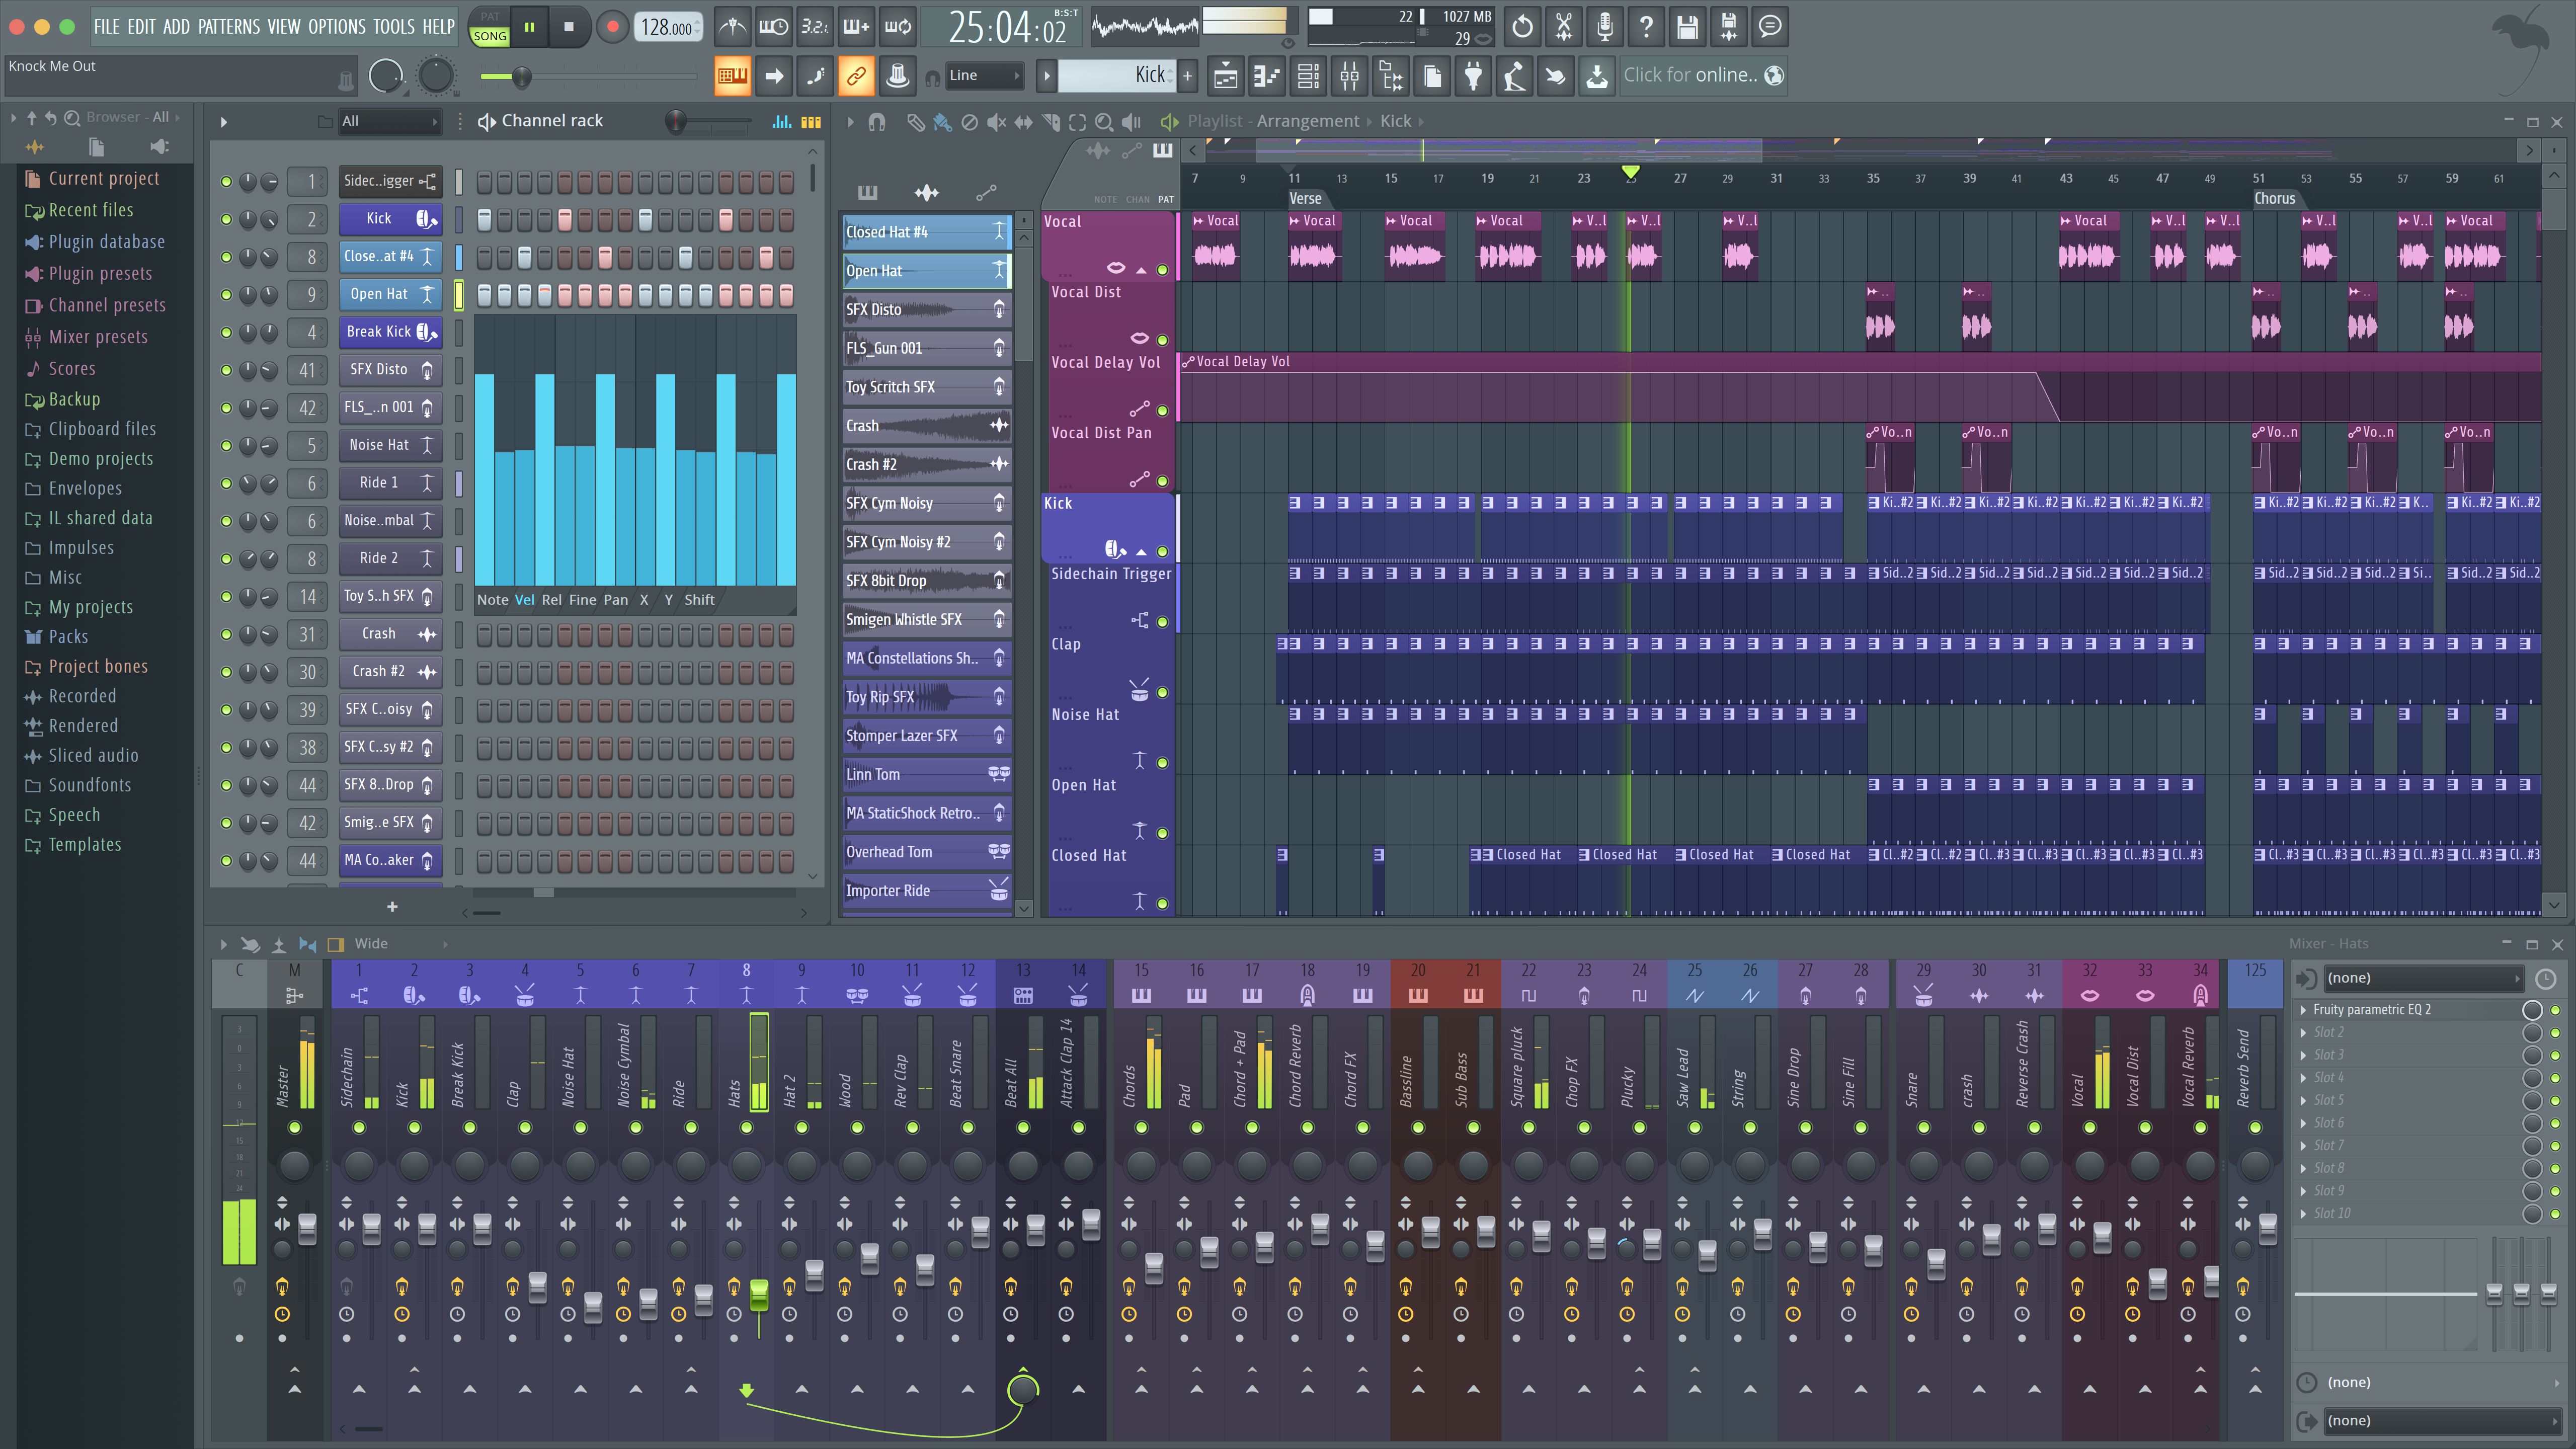 FL Studio vs Reaper detailed comparison as of 2019 - Slant